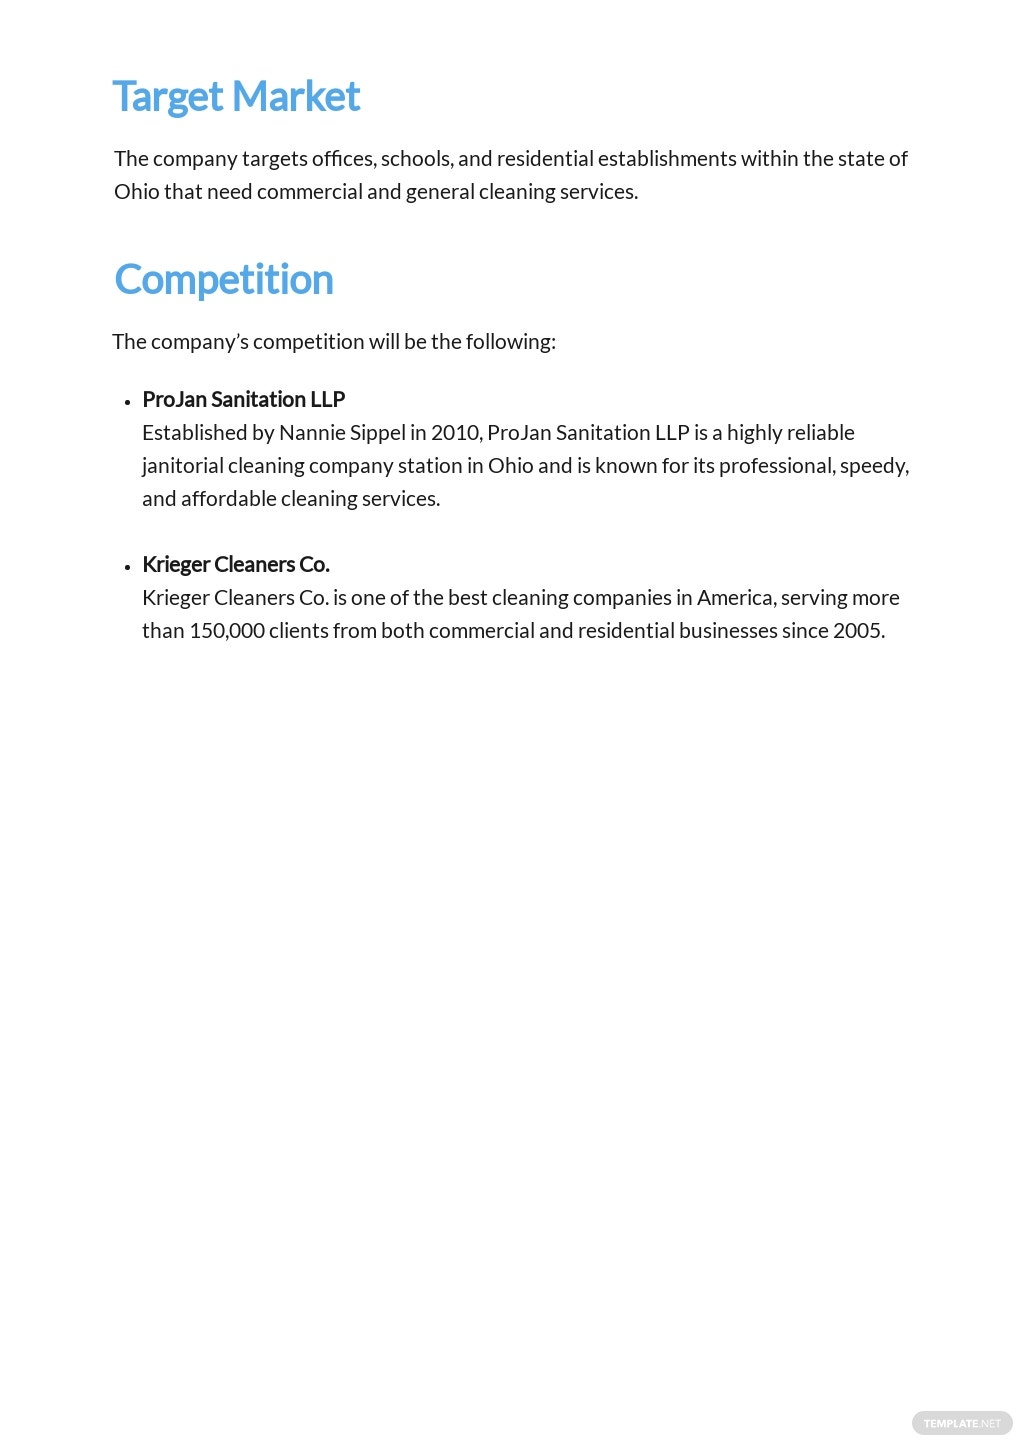 Commercial Cleaning Service Business Plan Template 2.jpe